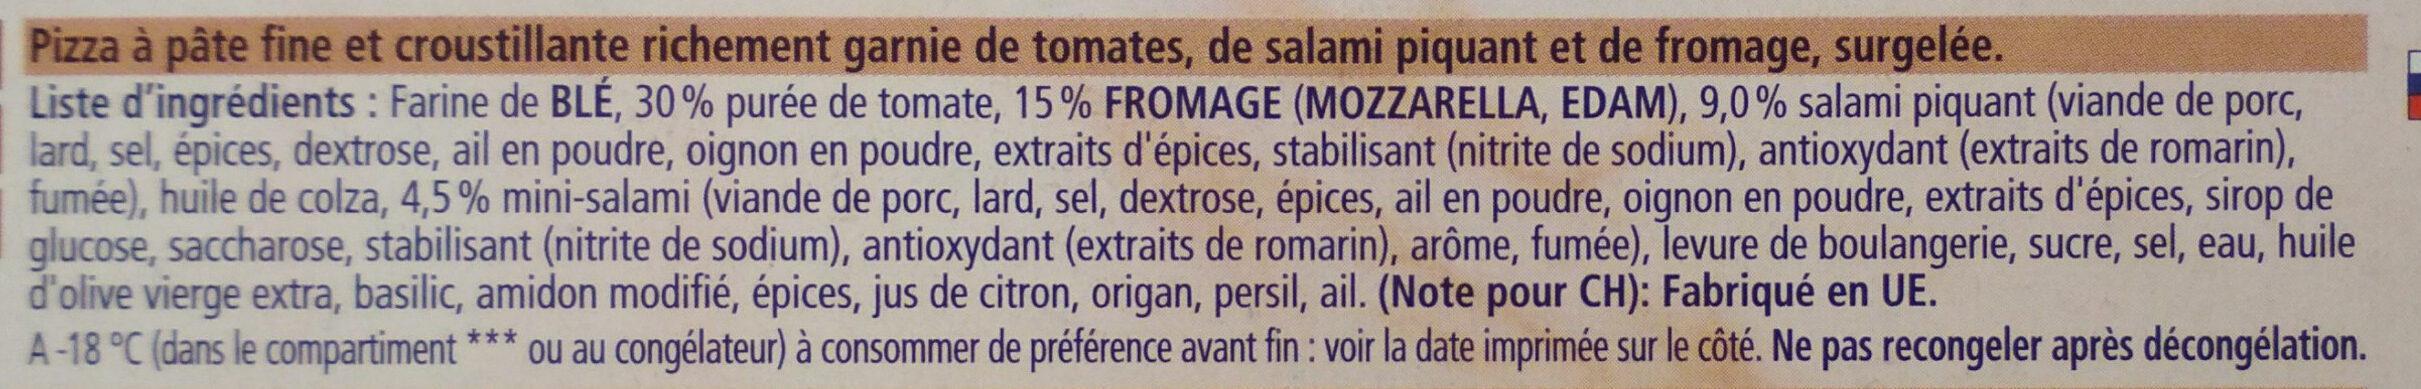 Ristorante Pizza Pepperoni-Salame - Ingredients